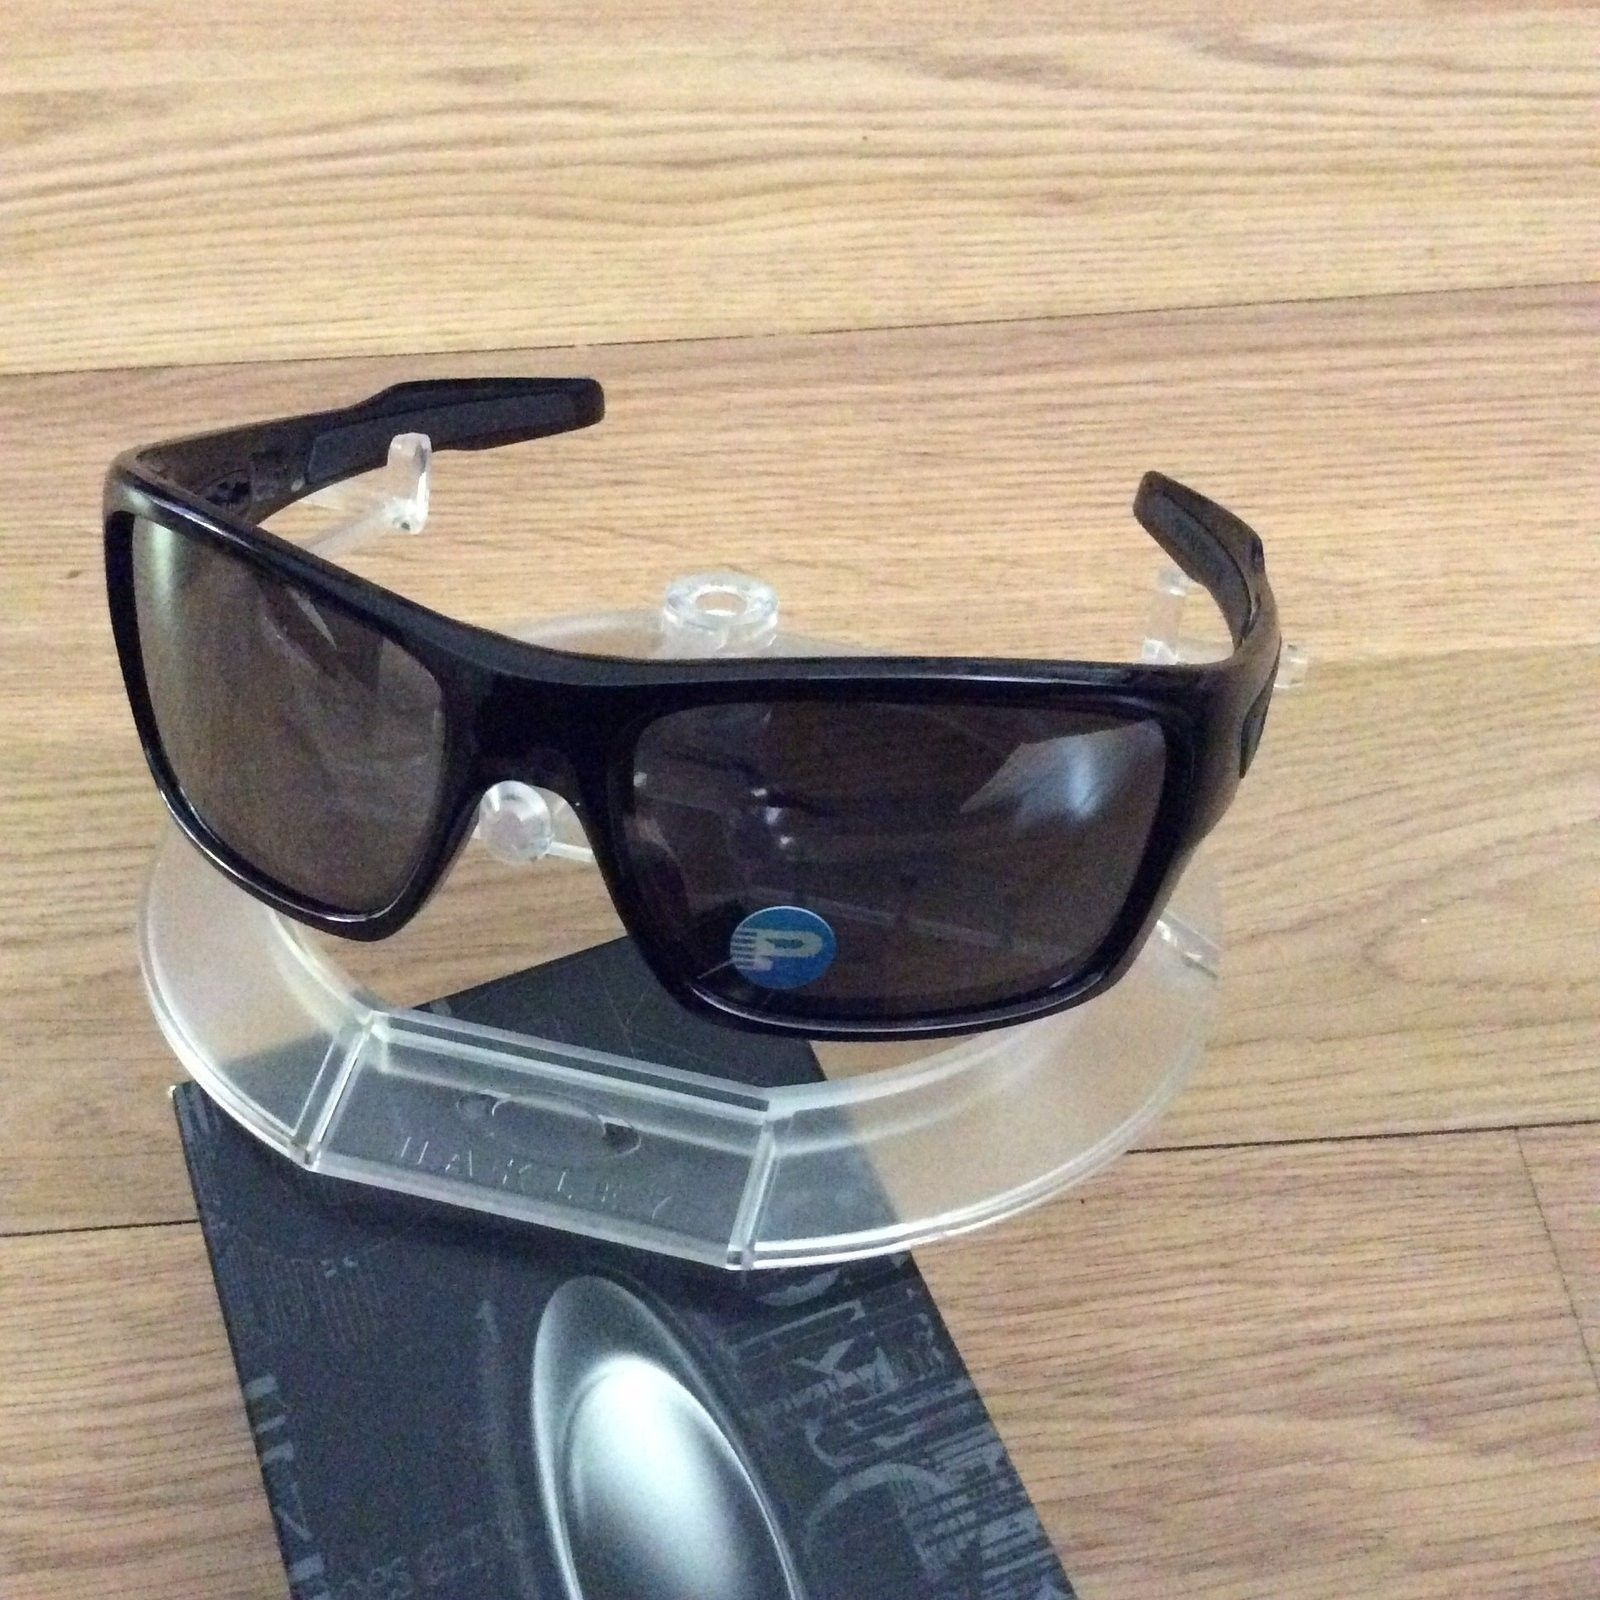 BNIB Turbine Polarized $100 shipped - image.jpg